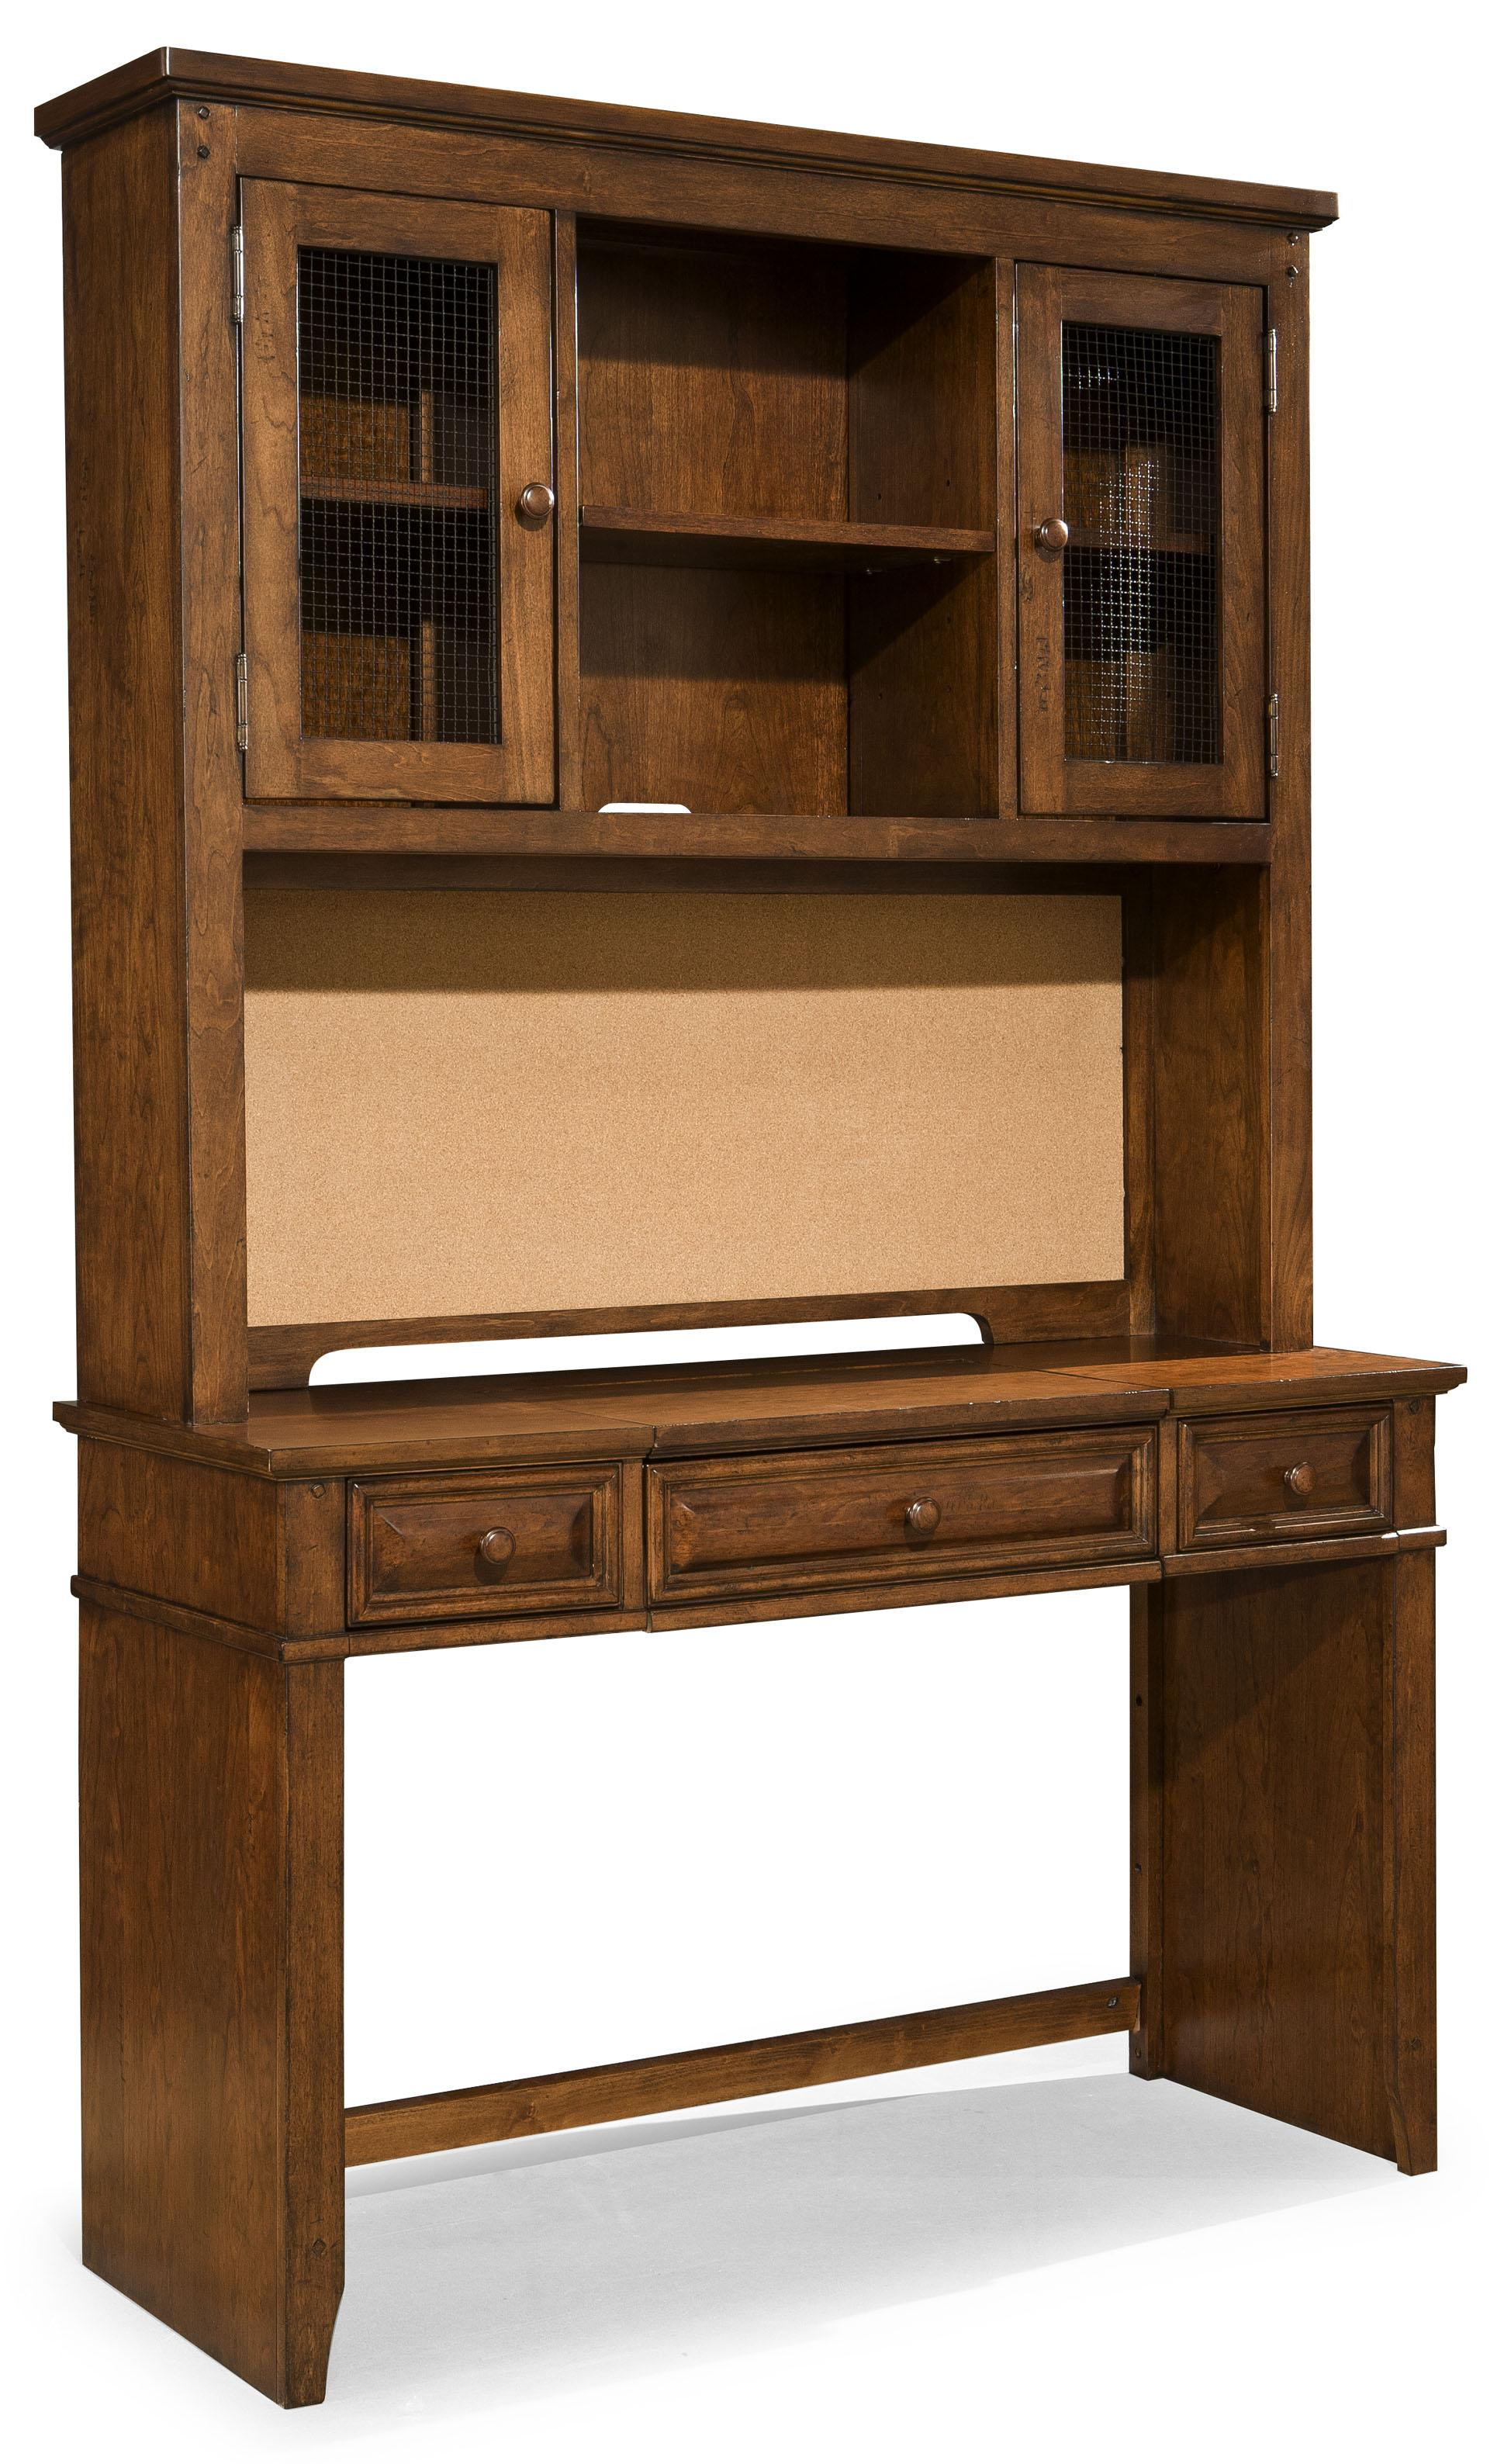 Legacy Classic Kids Dawson's Ridge Desk and Hutch - Item Number: 2960-6100+6200